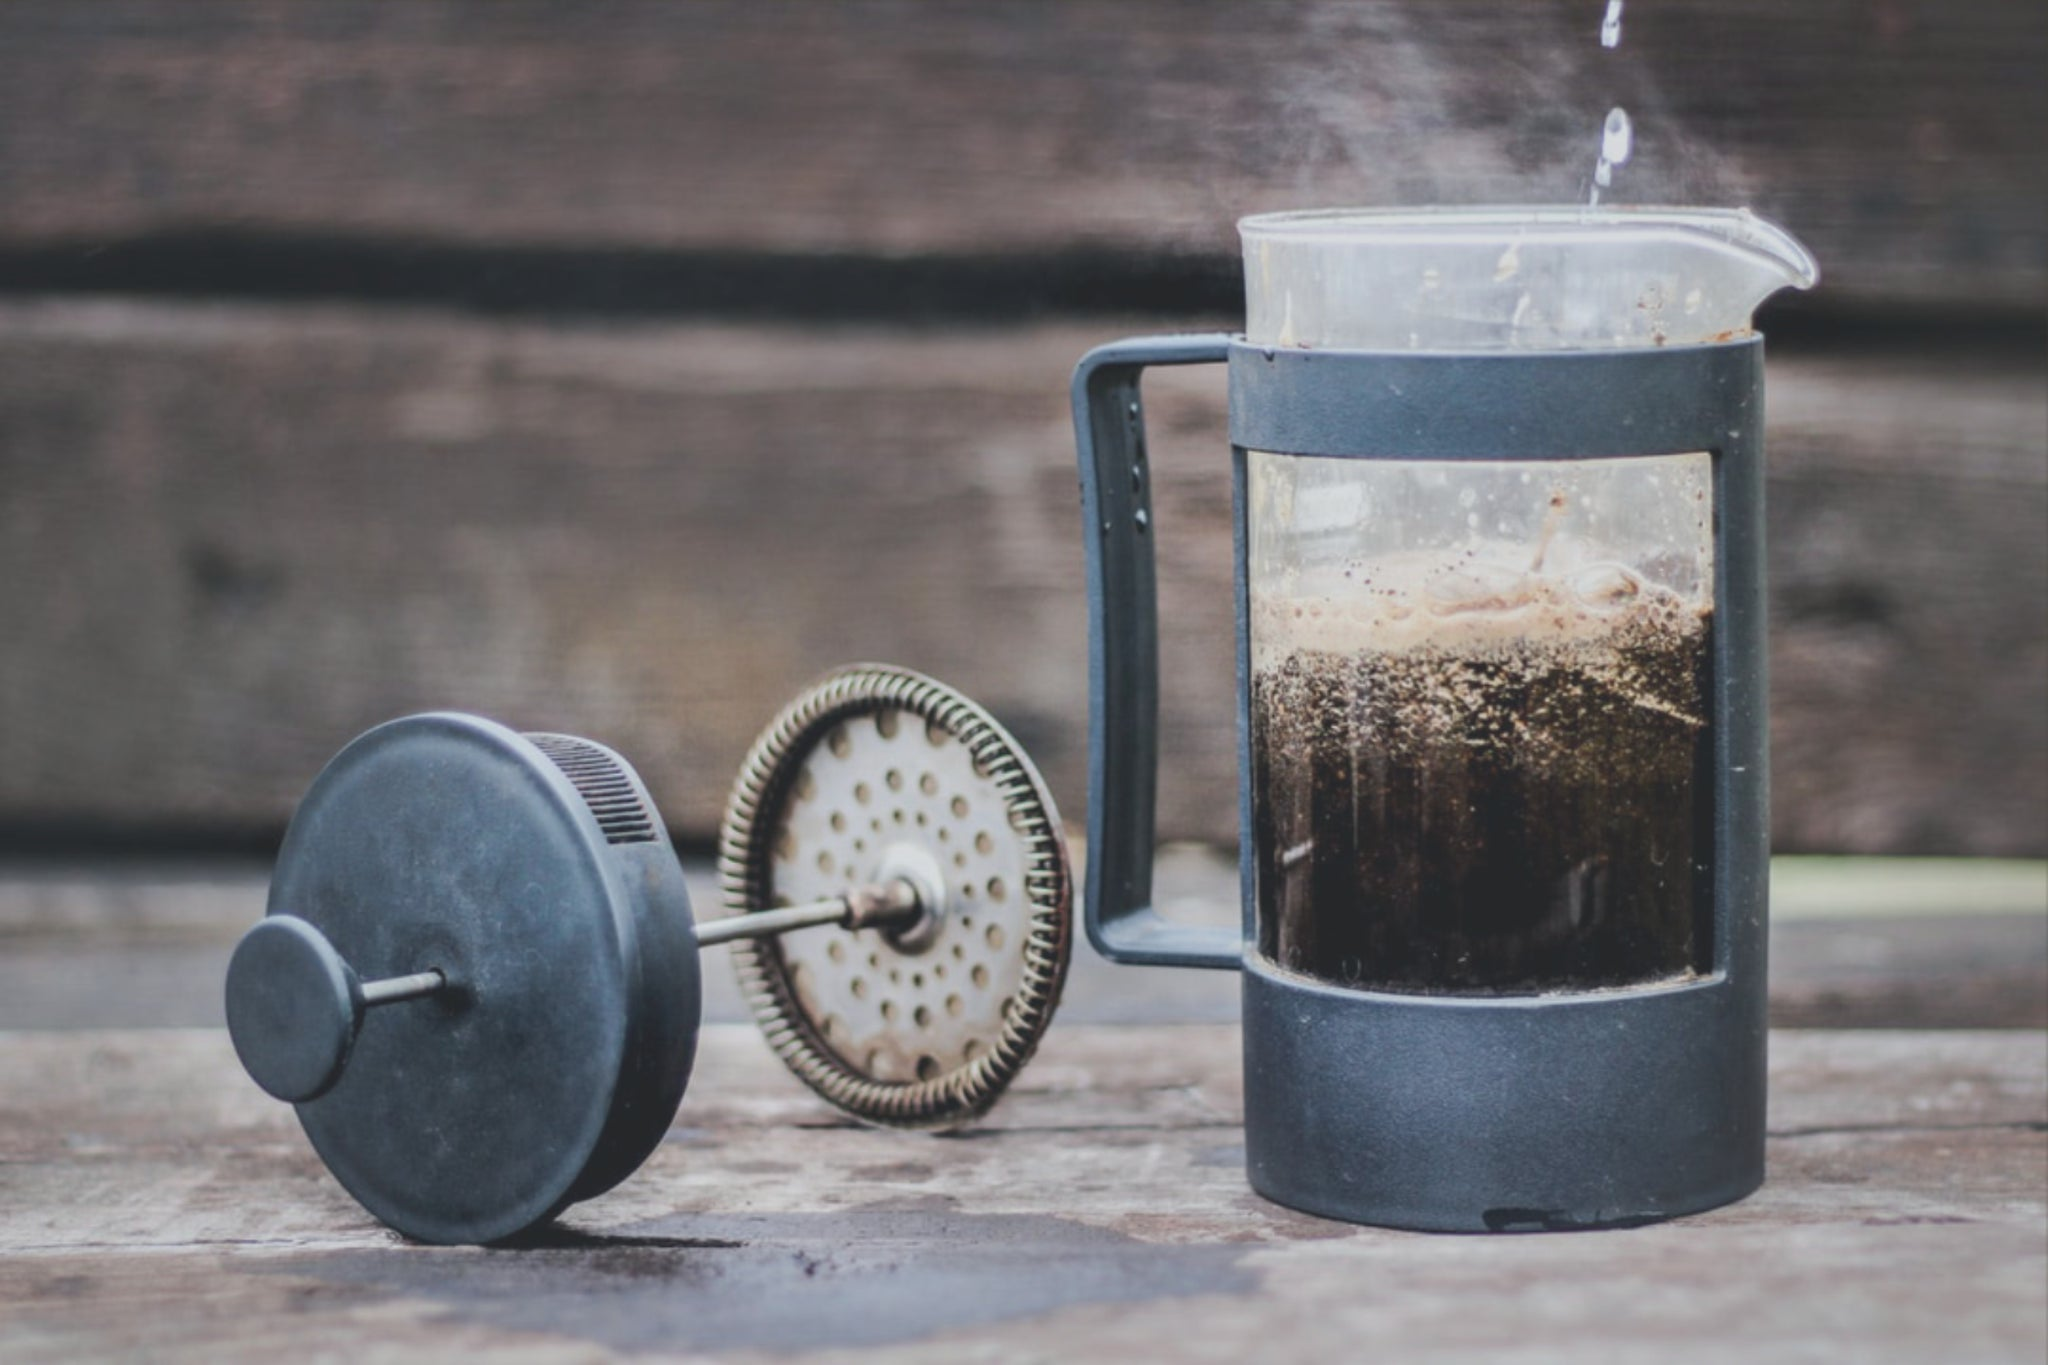 Karmic Grounds: Discover the Flavor of Different Coffee Brewing Methods